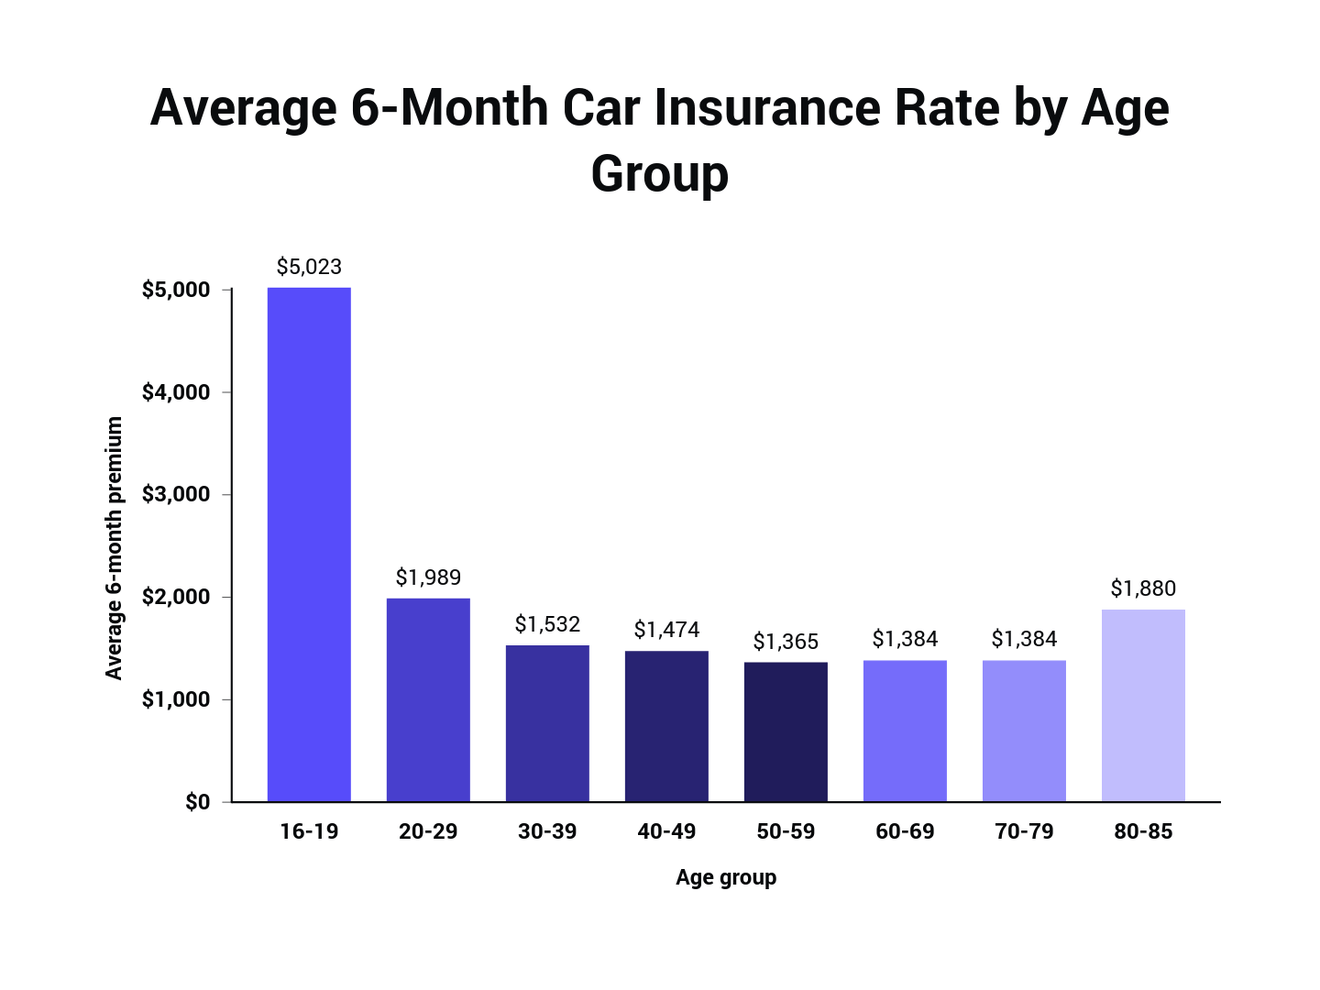 Average 6-Month Car Insurance Rate by Age Group